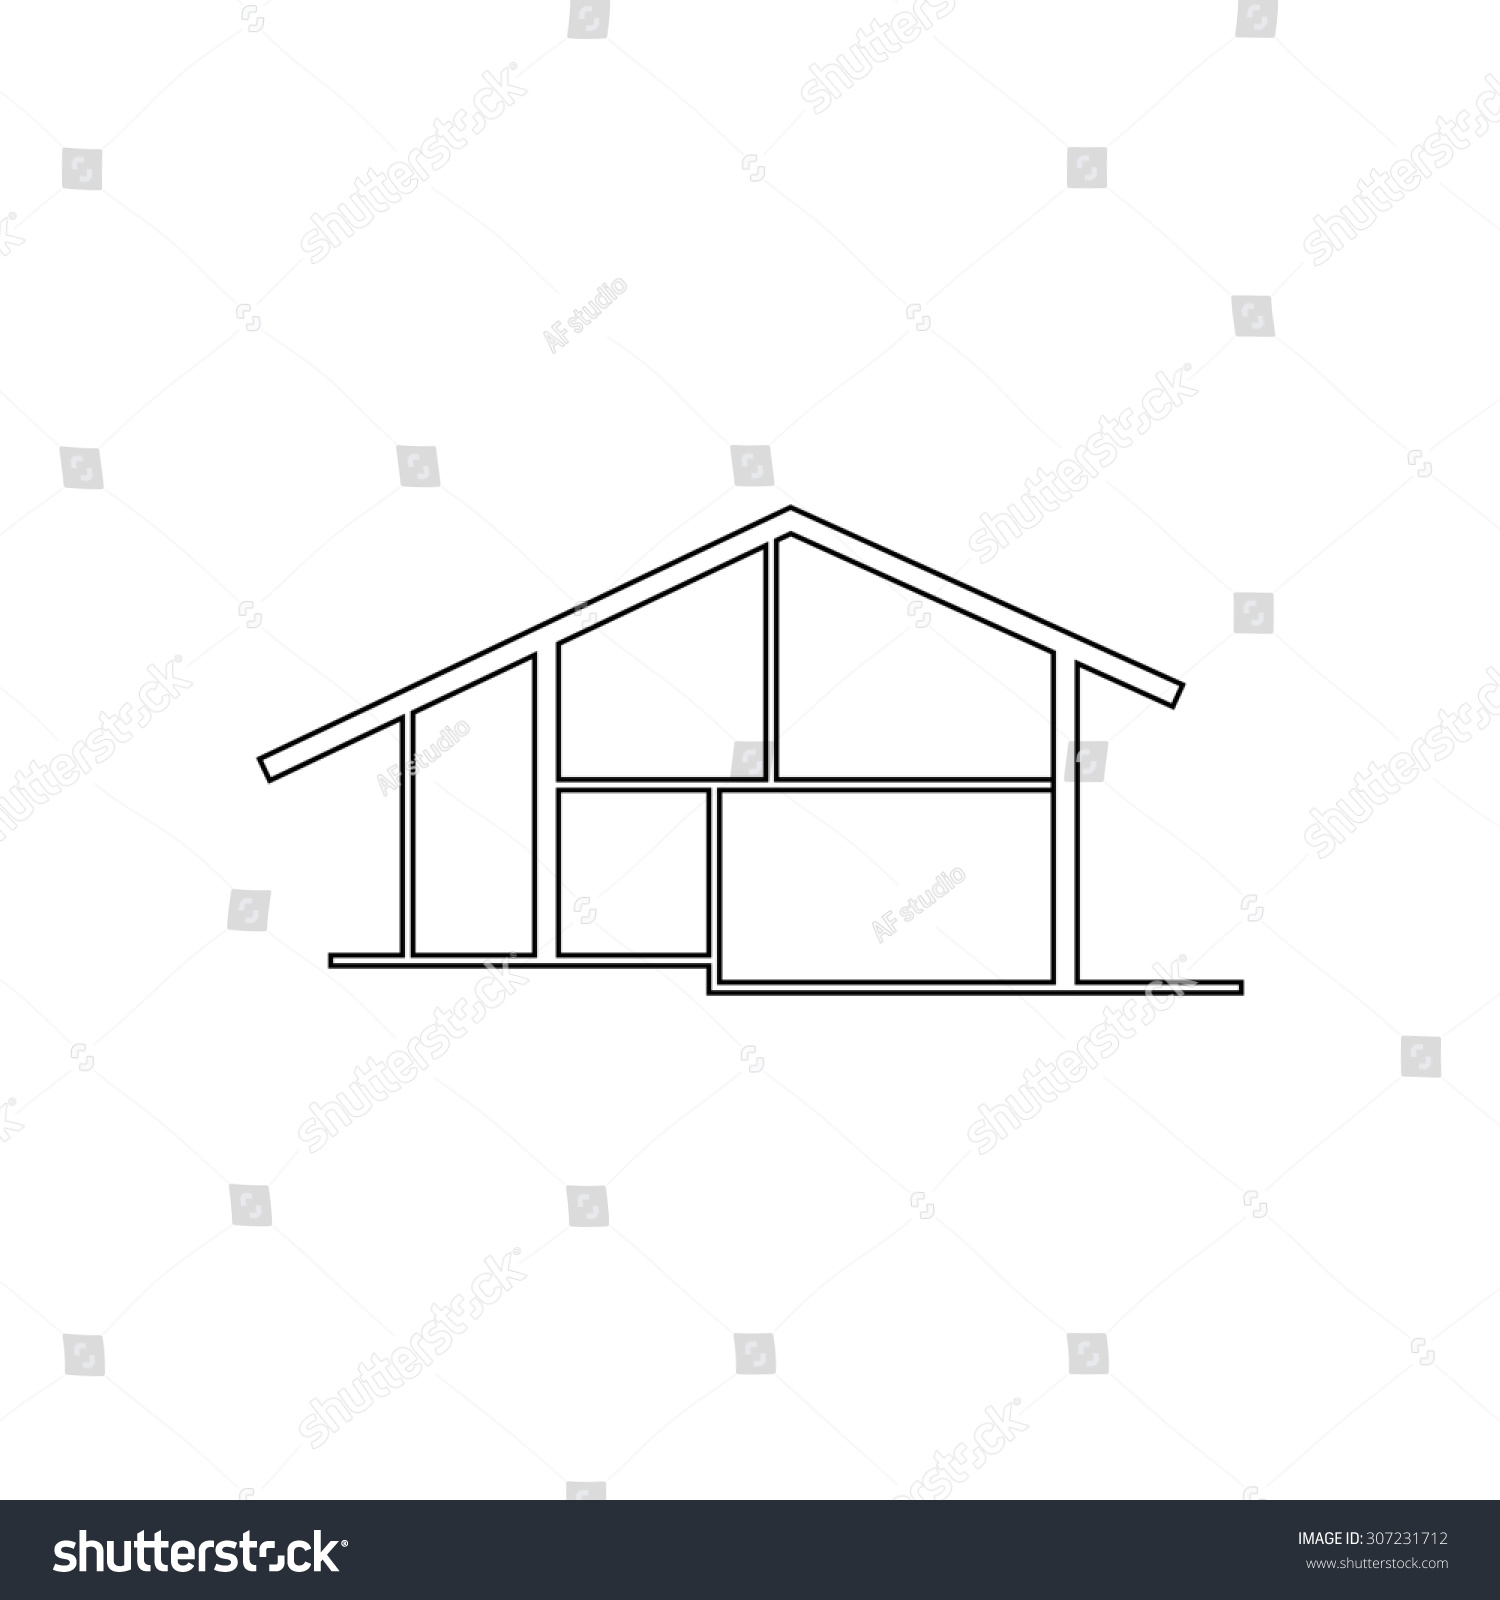 House outline picture - Modern House Outline Black Simple Symbol